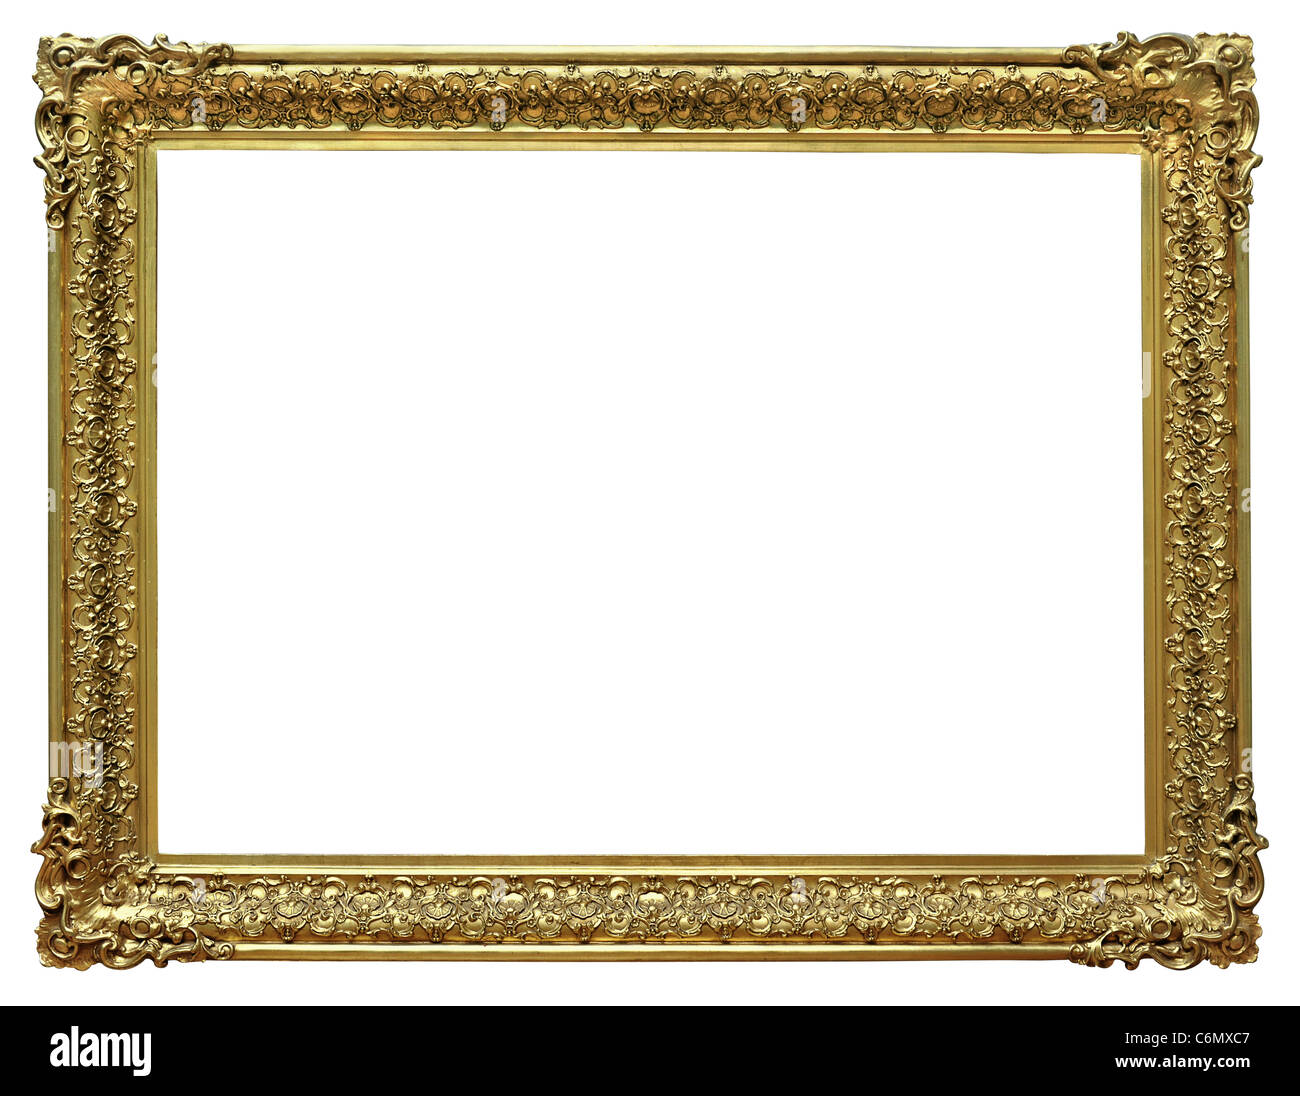 Gold frame isolated over white background - With clipping path - Stock Image